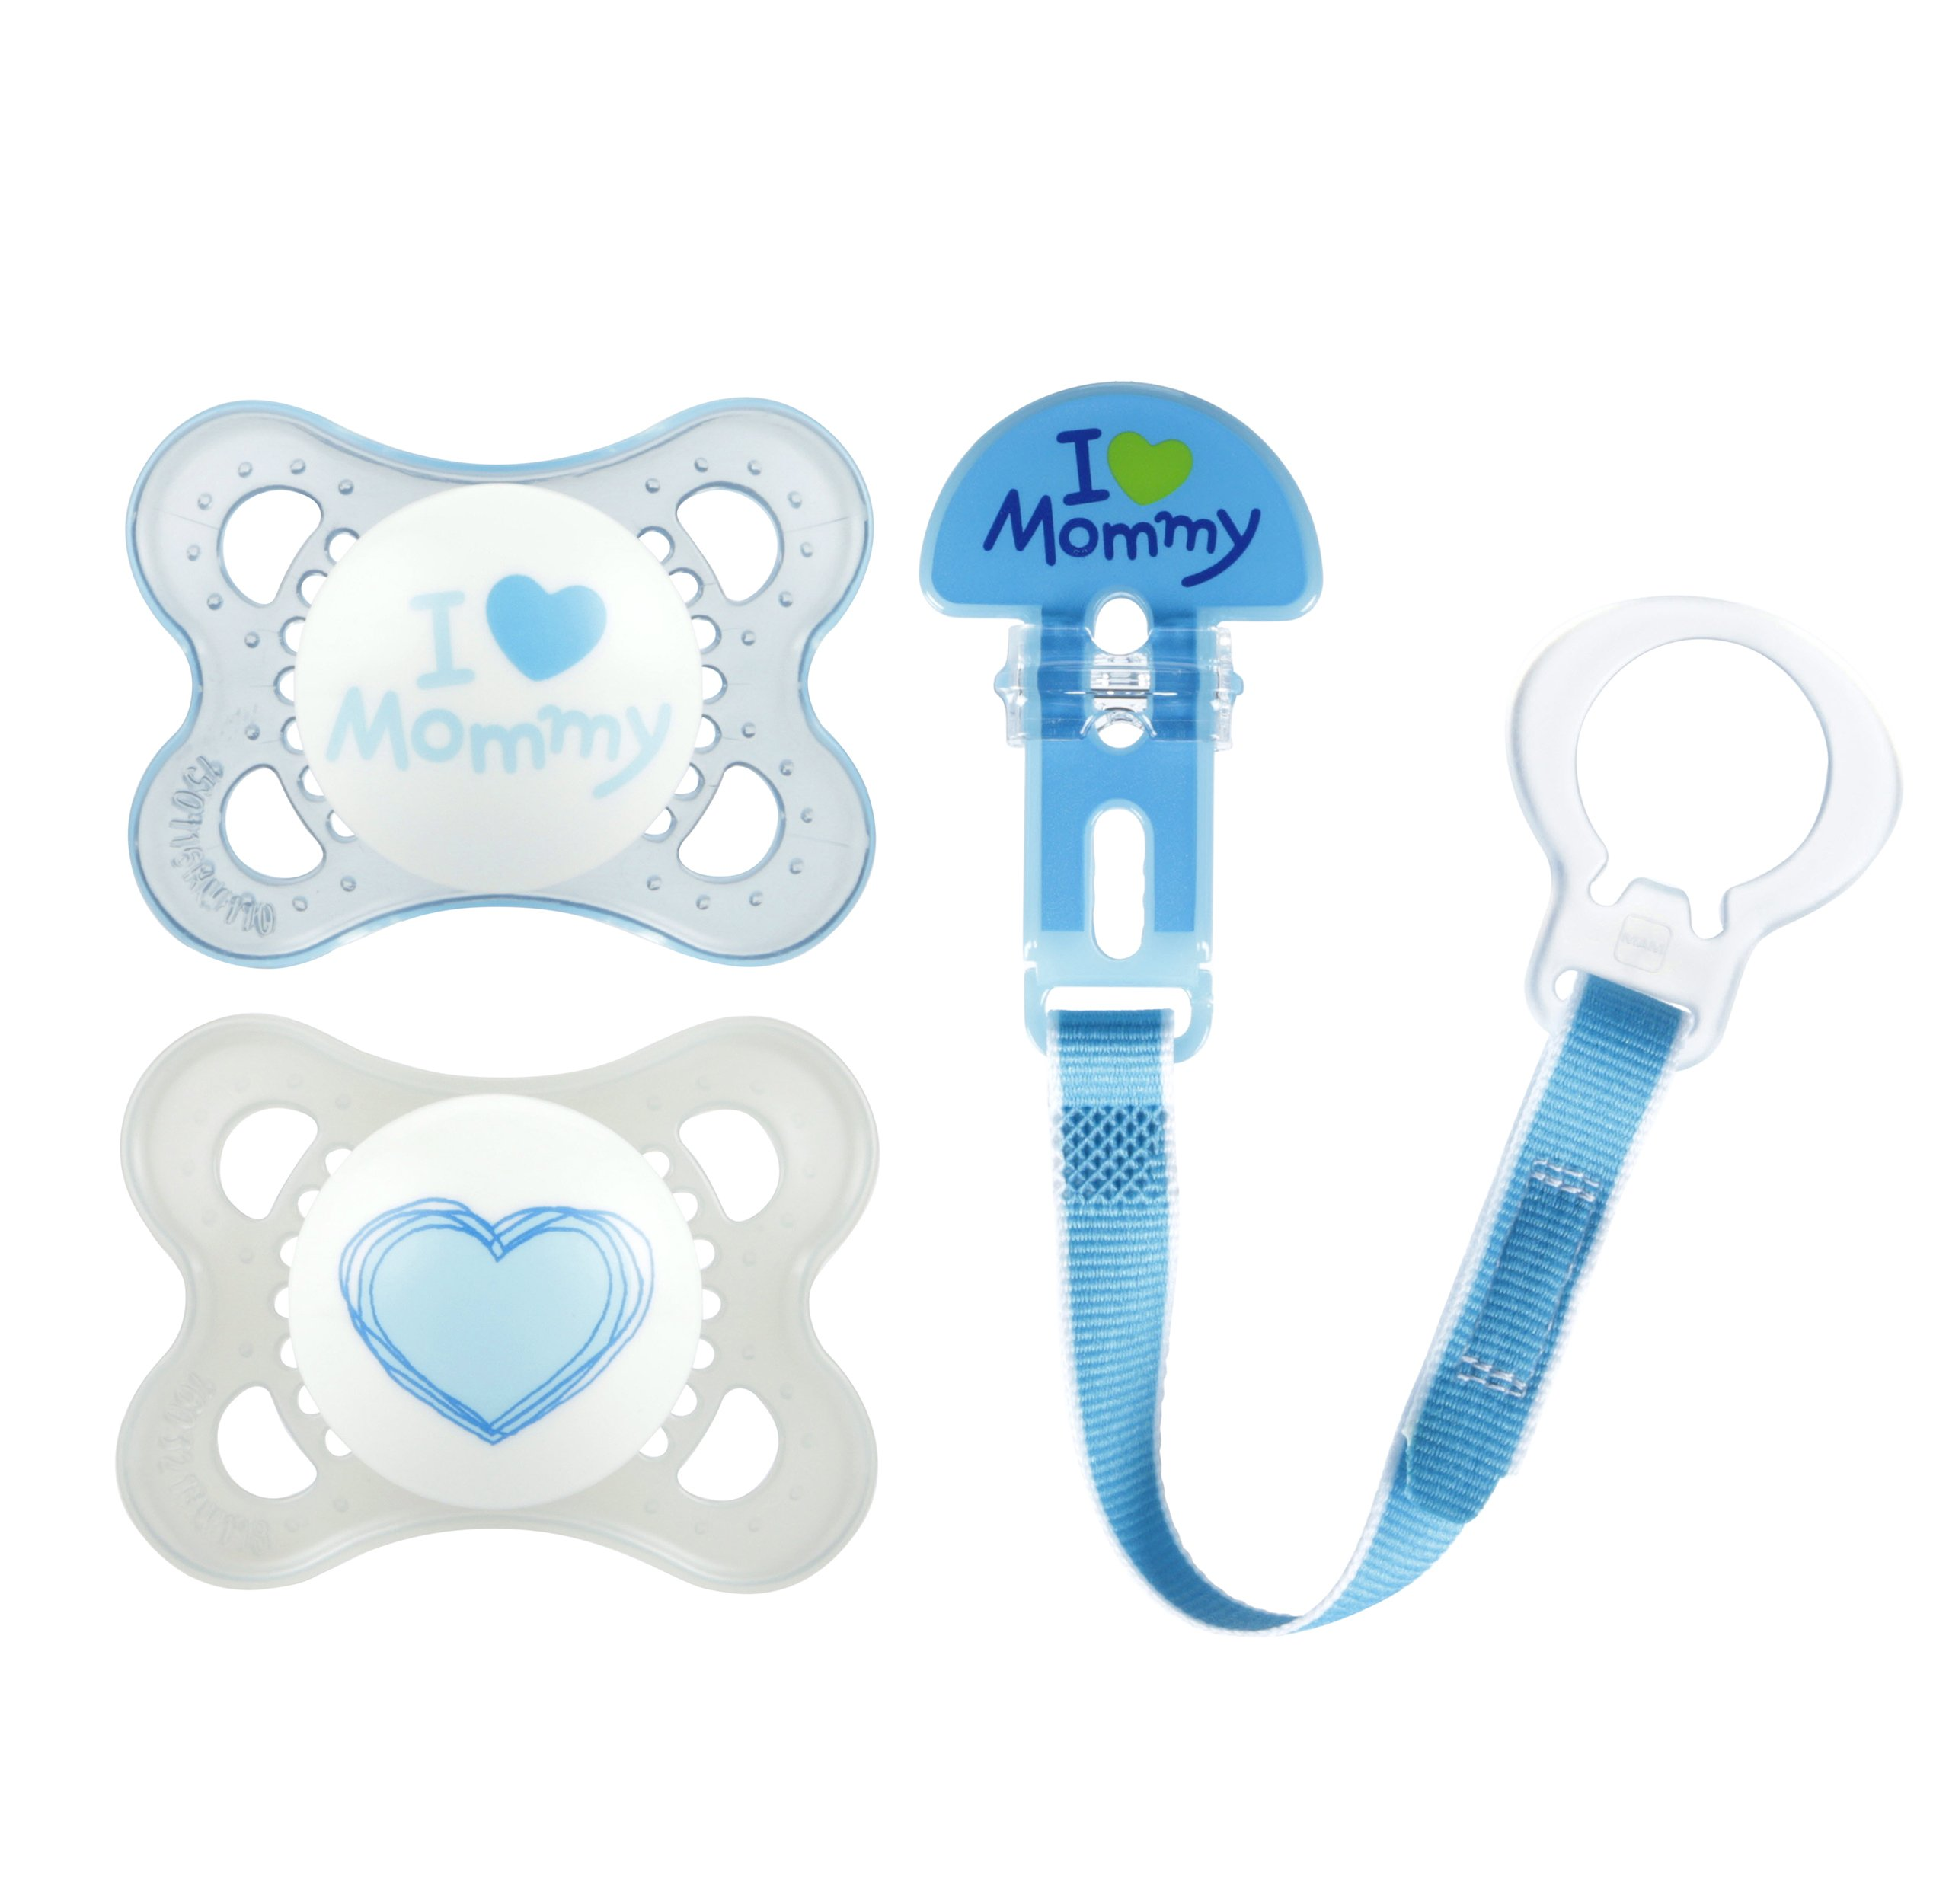 MAM Pacifier and MAM Pacifier Clip Value Pack